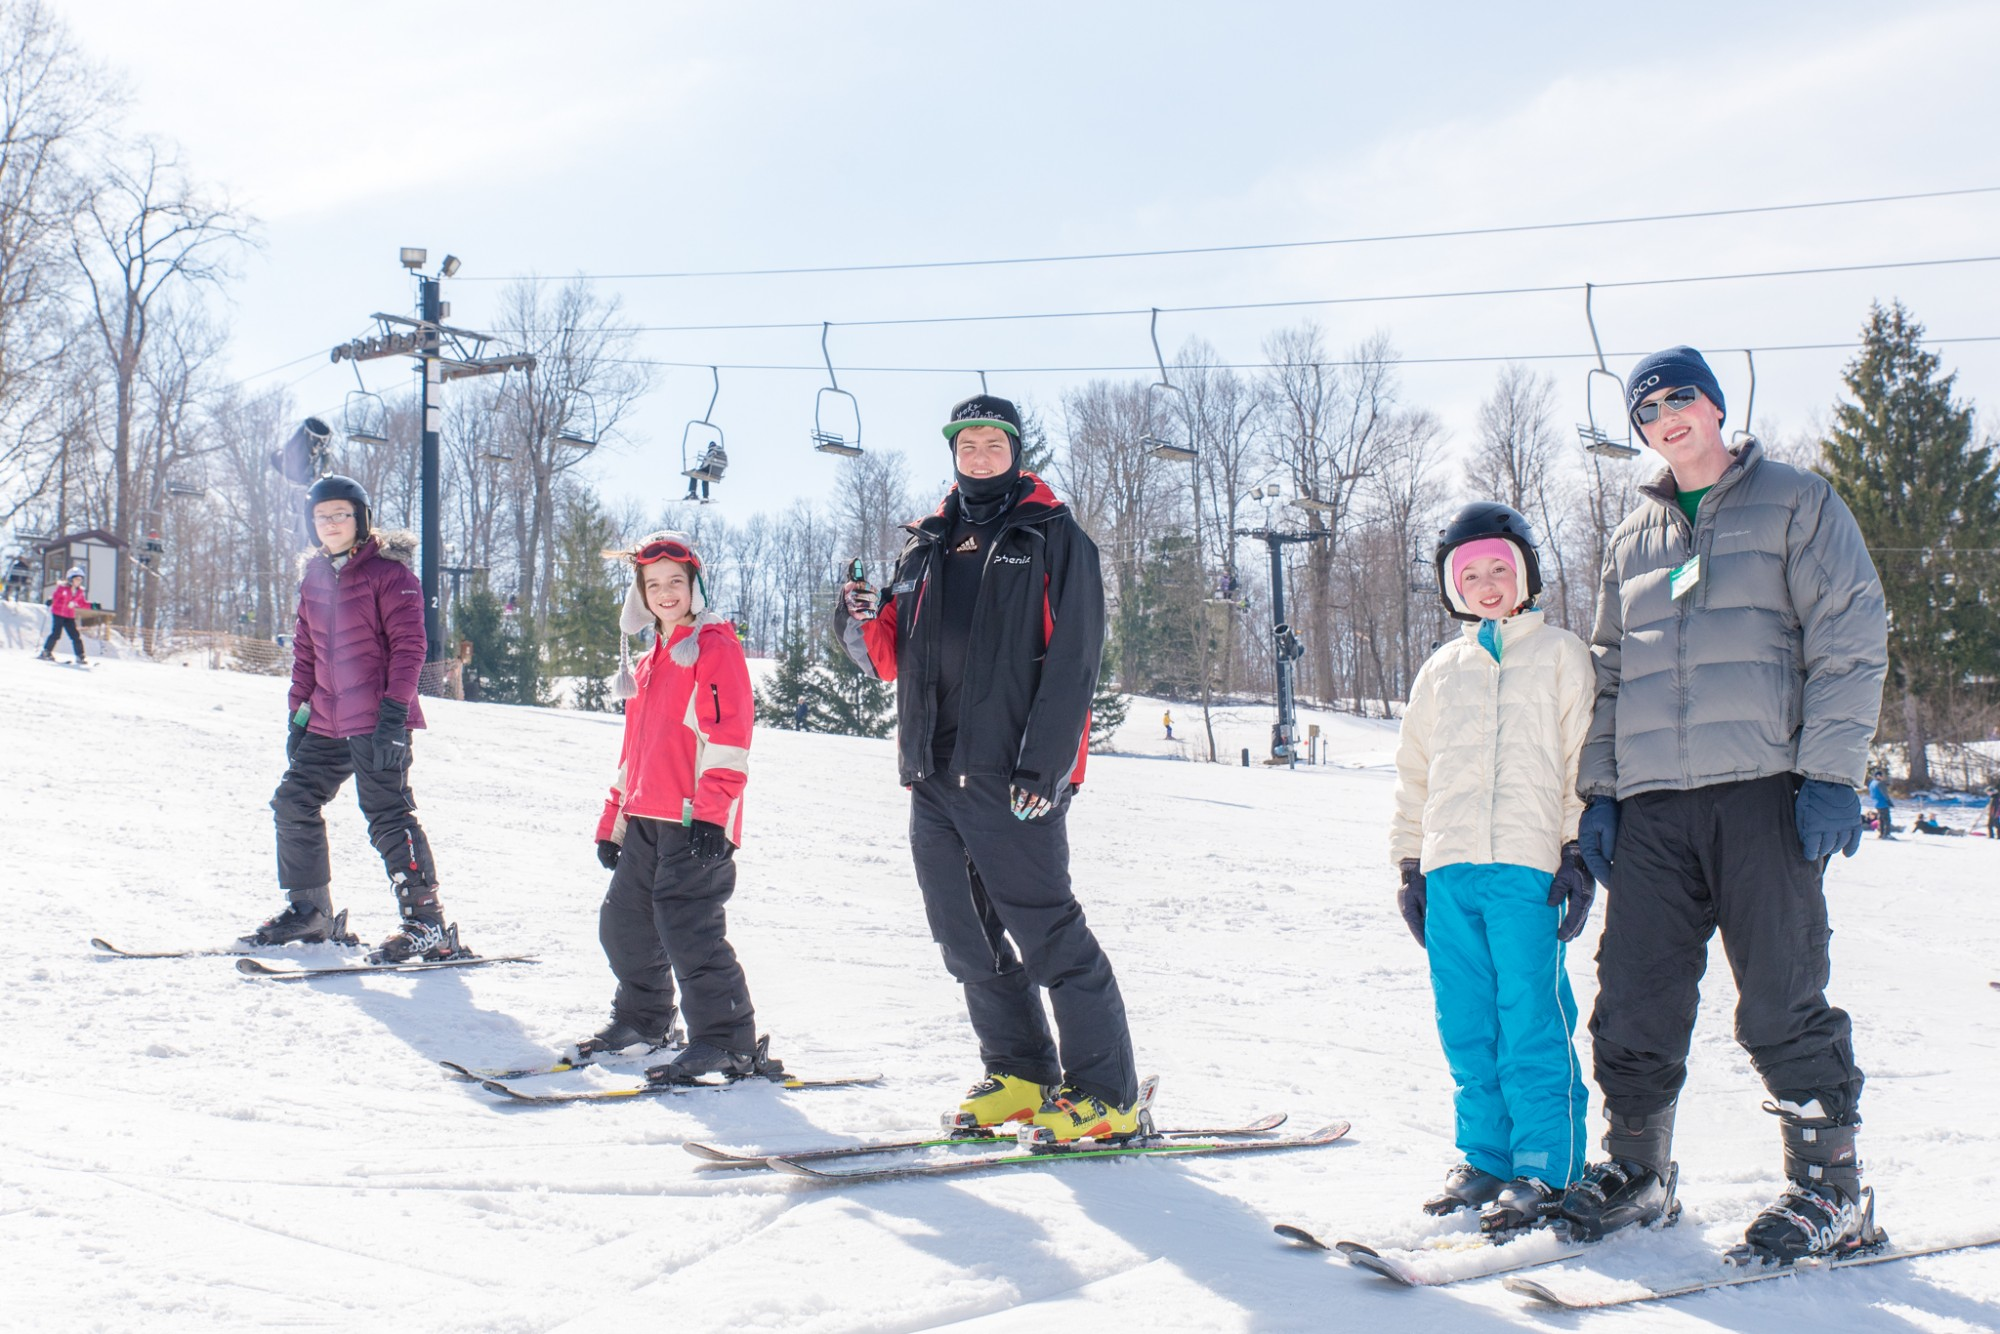 Snow Trails Celebrates Learn to Ski & Snowboard Month  With Special Beginner Packages and Programs for Kids